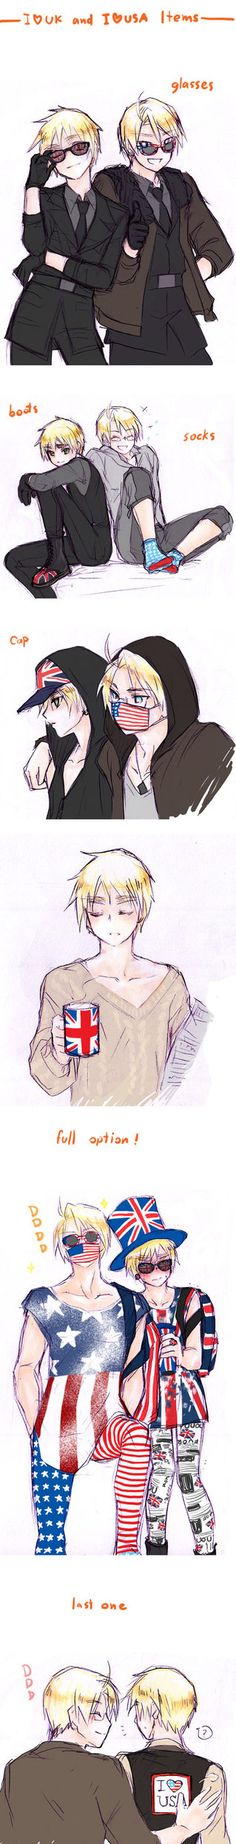 aph I love UK, I love USA Item by mikitaka on deviantART>>>> now I don't exactly ship them but this was halarios and cute so...